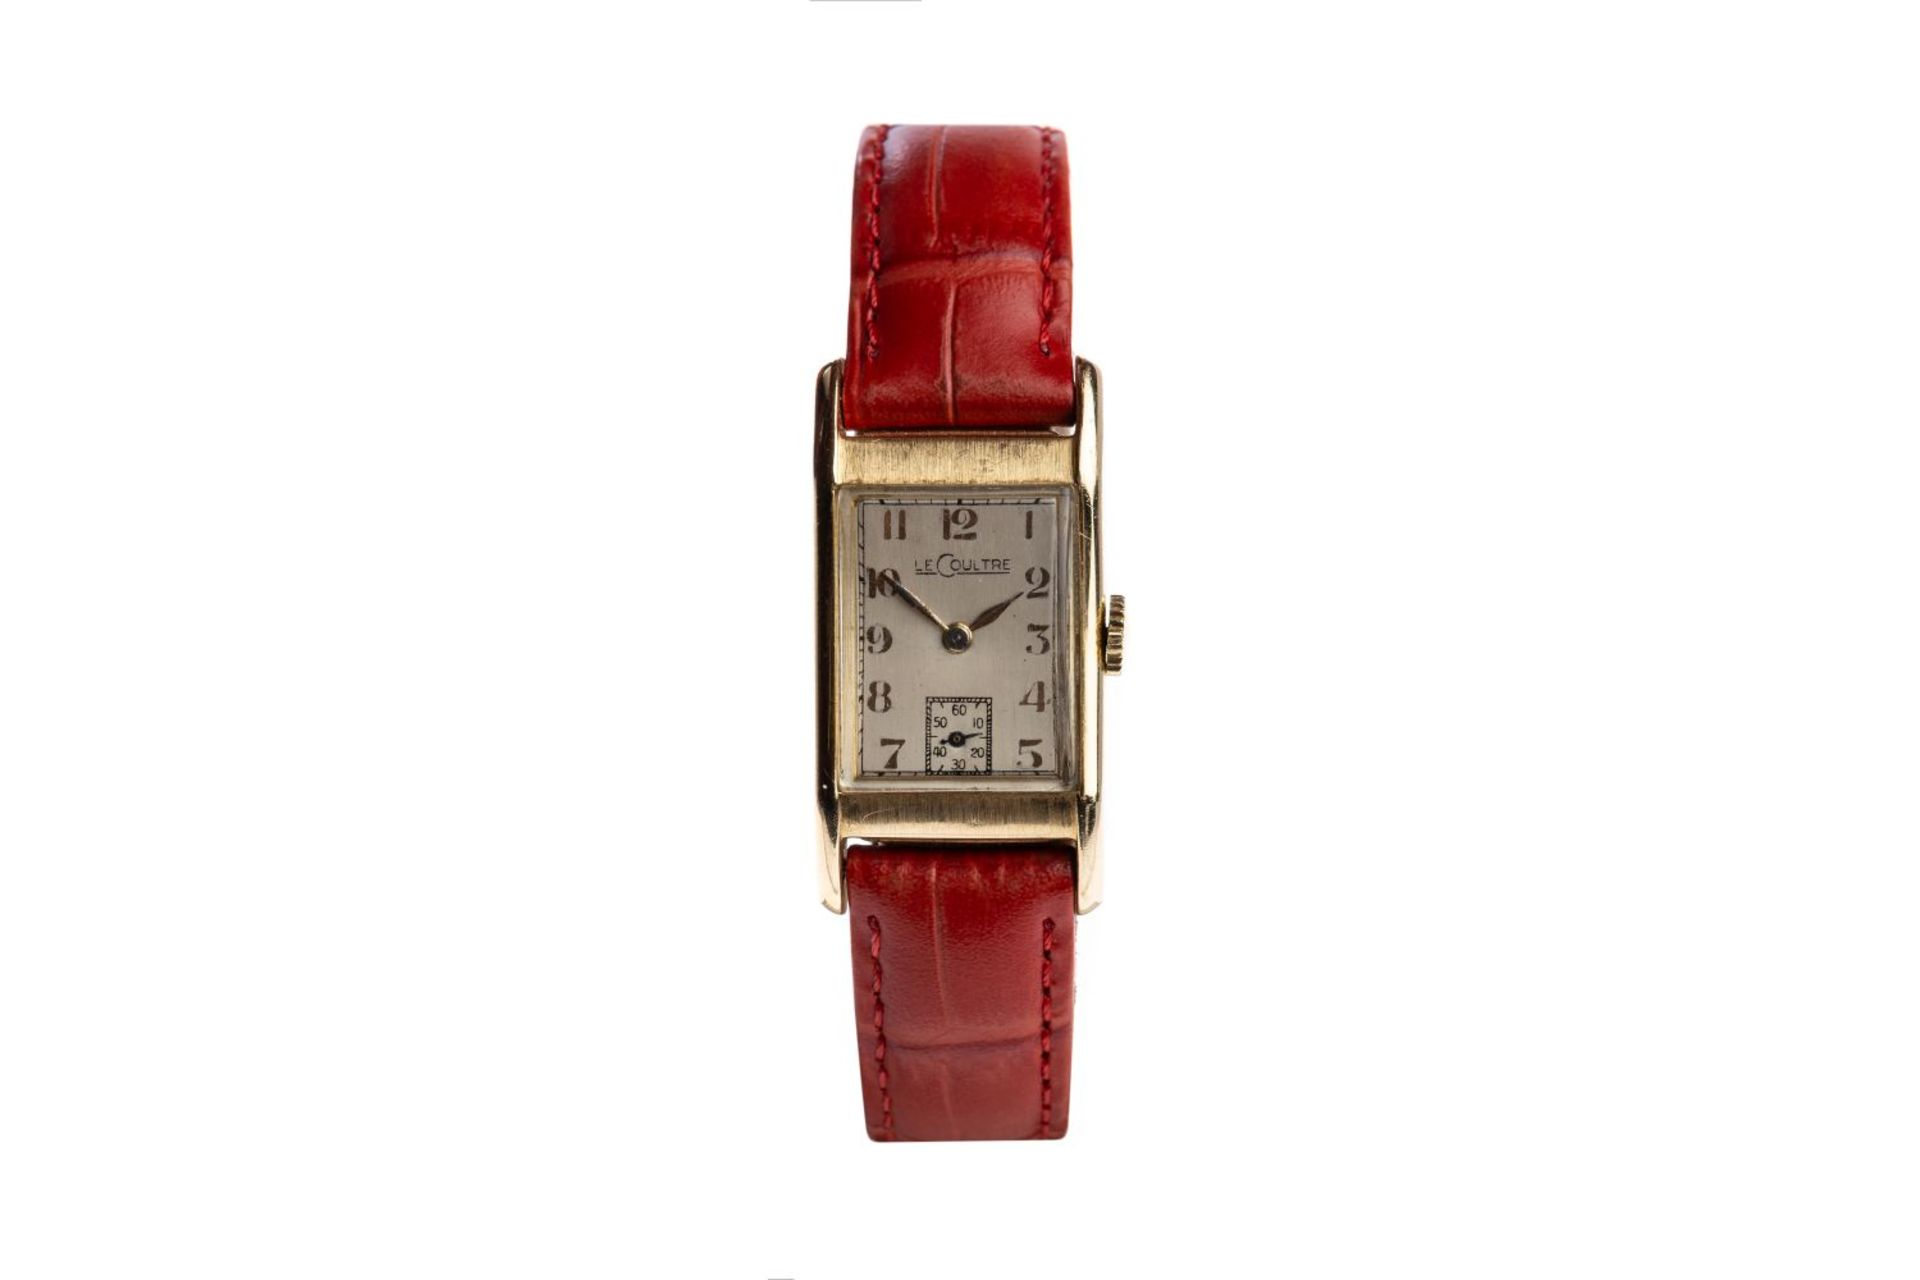 Los 85 - Le CoultreLe - Coultre wristwatch from the 1940sClassic square 14K gold case silver plated dial on